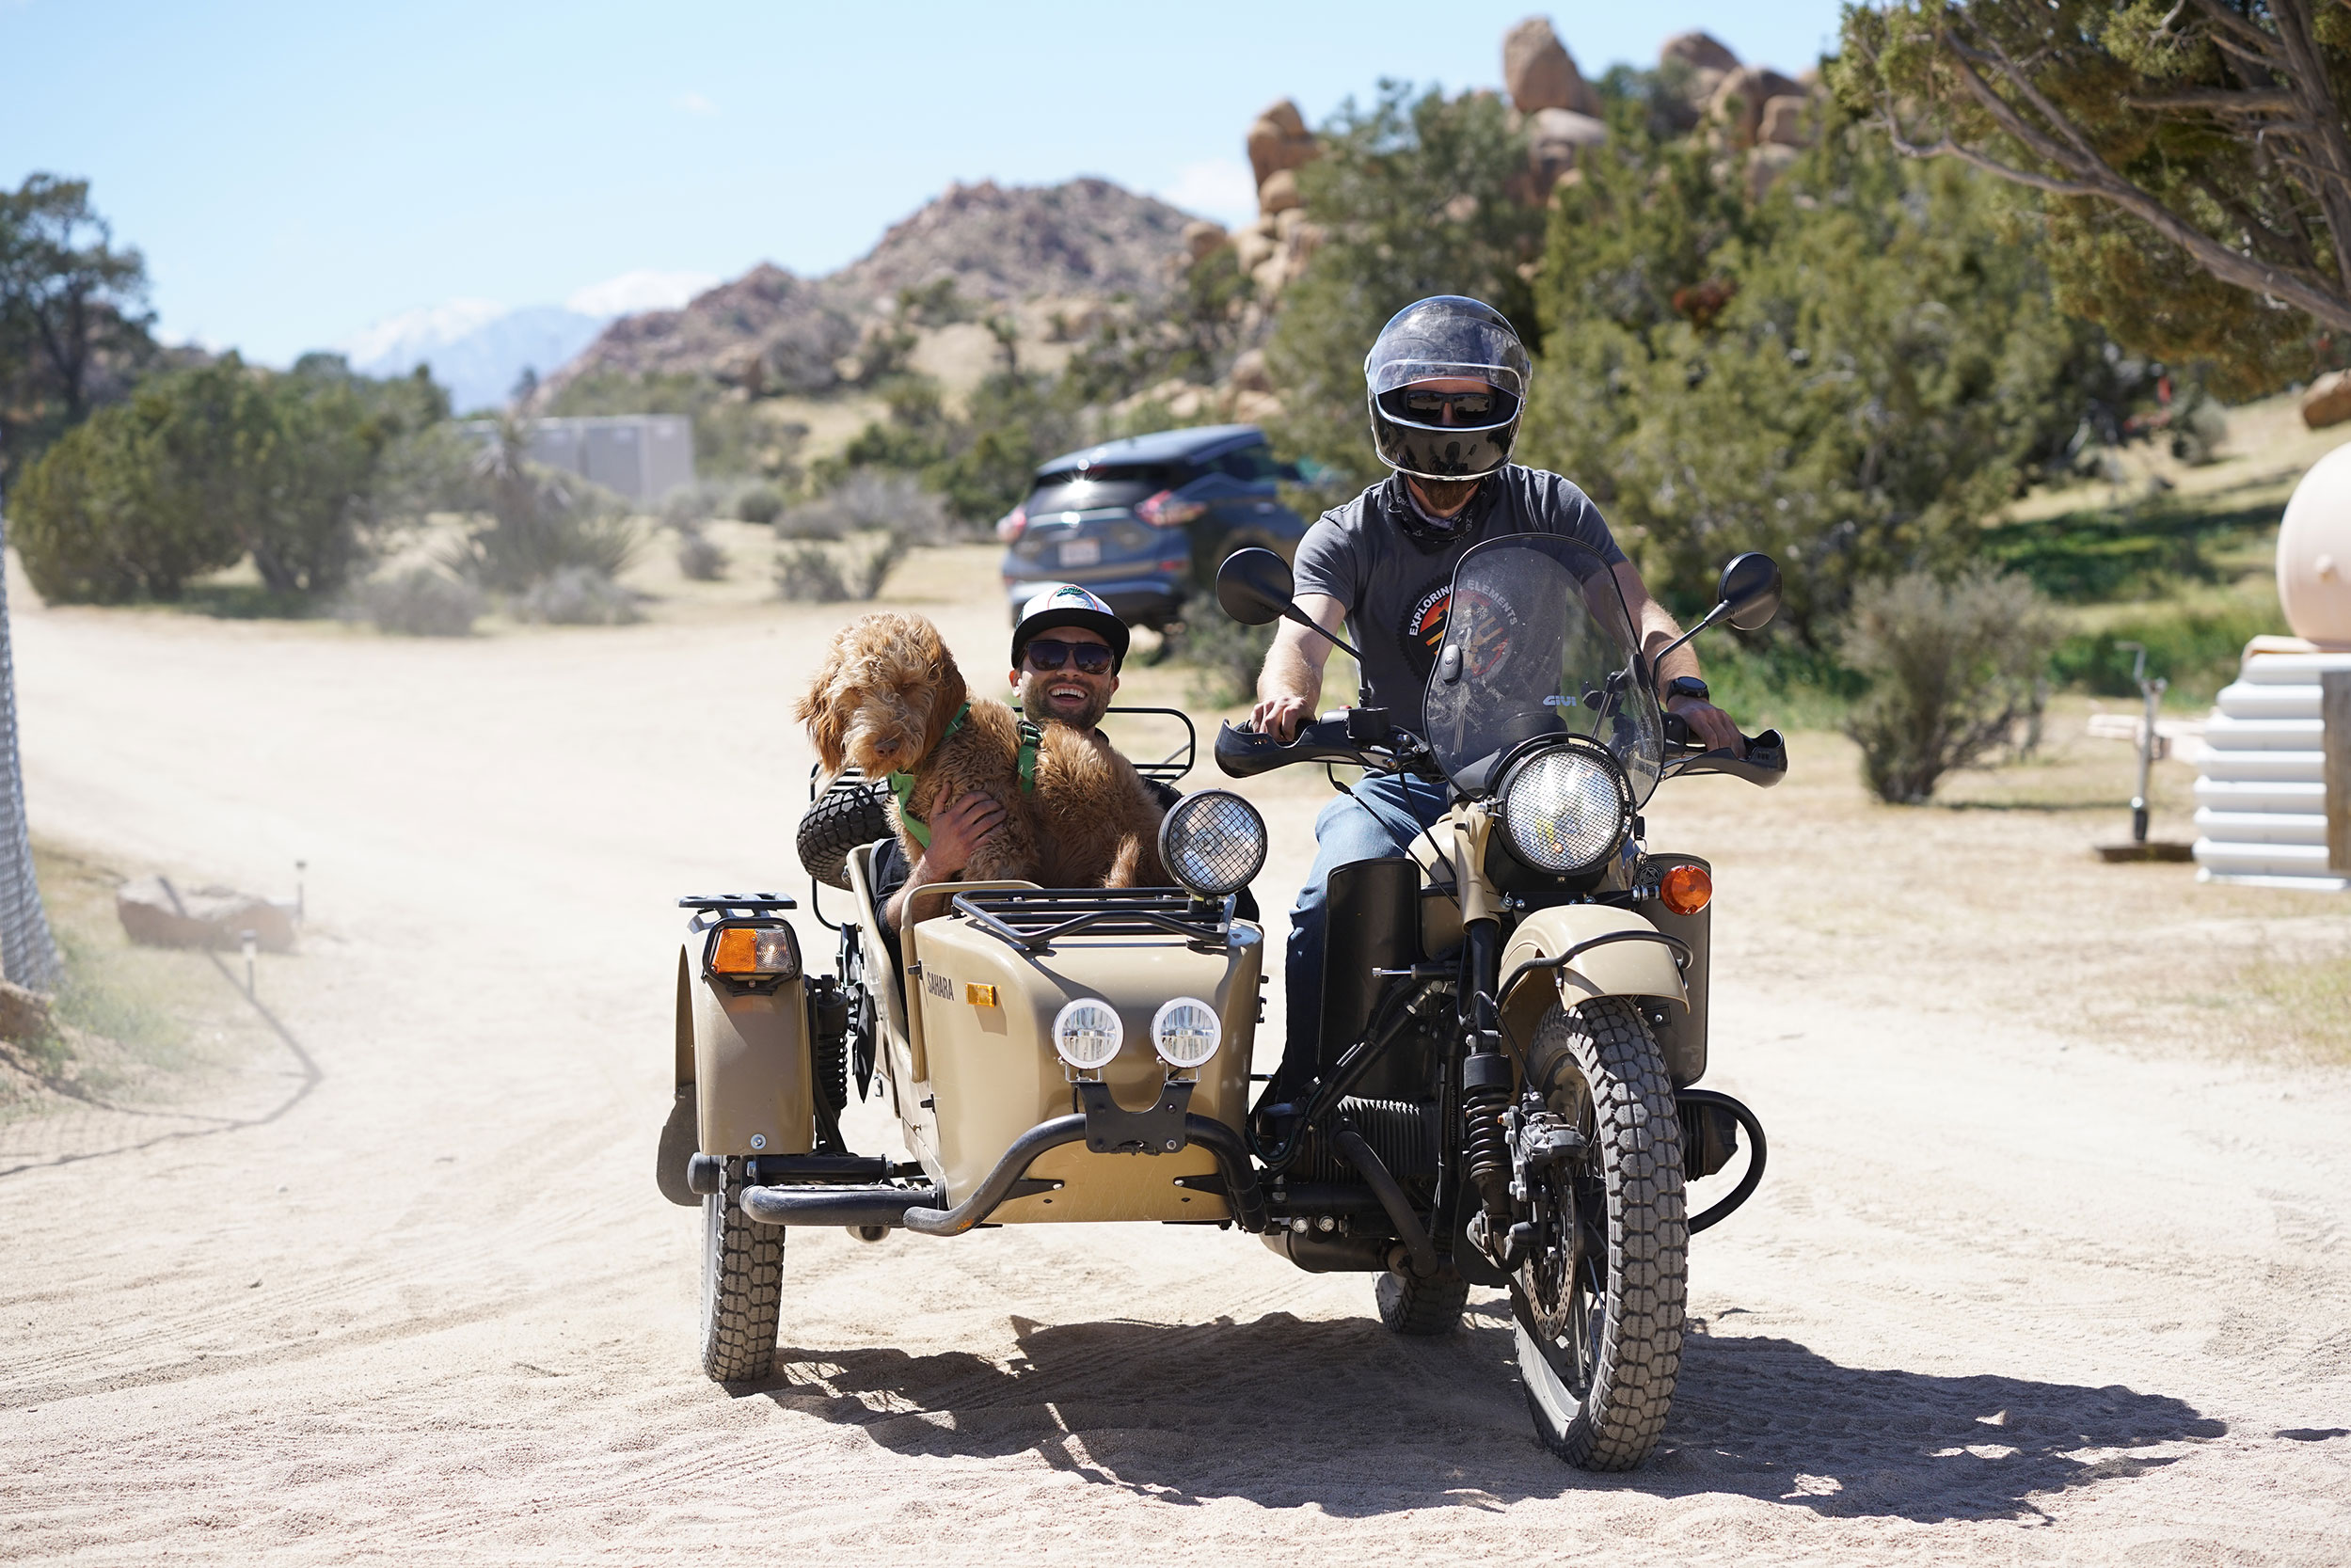 @spillynik of  Ninkasi Brewery , his sidekick Oso, and  @explorelements on our  Gear Up Sahara  exploring the grounds.